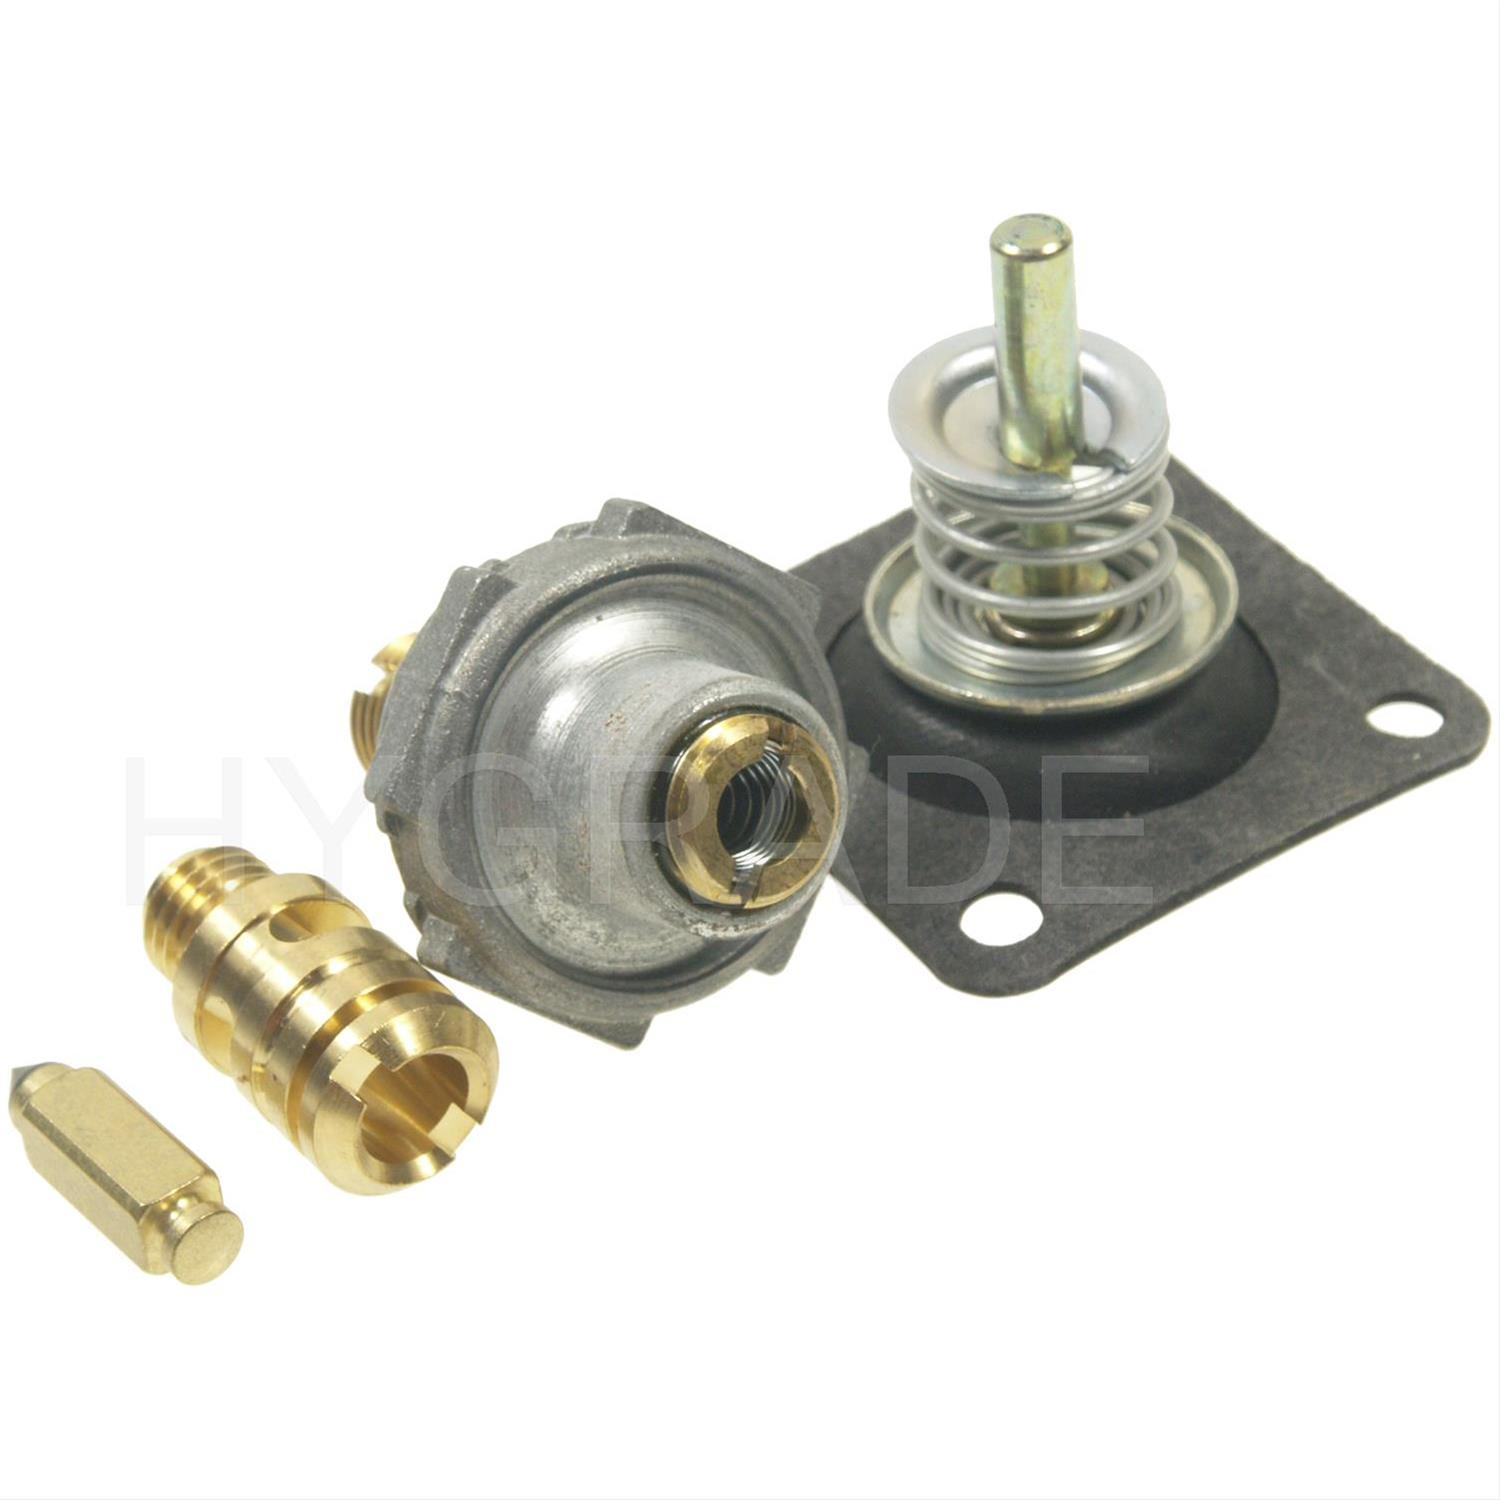 Standard Motor Products 1238B Carburetor Kit